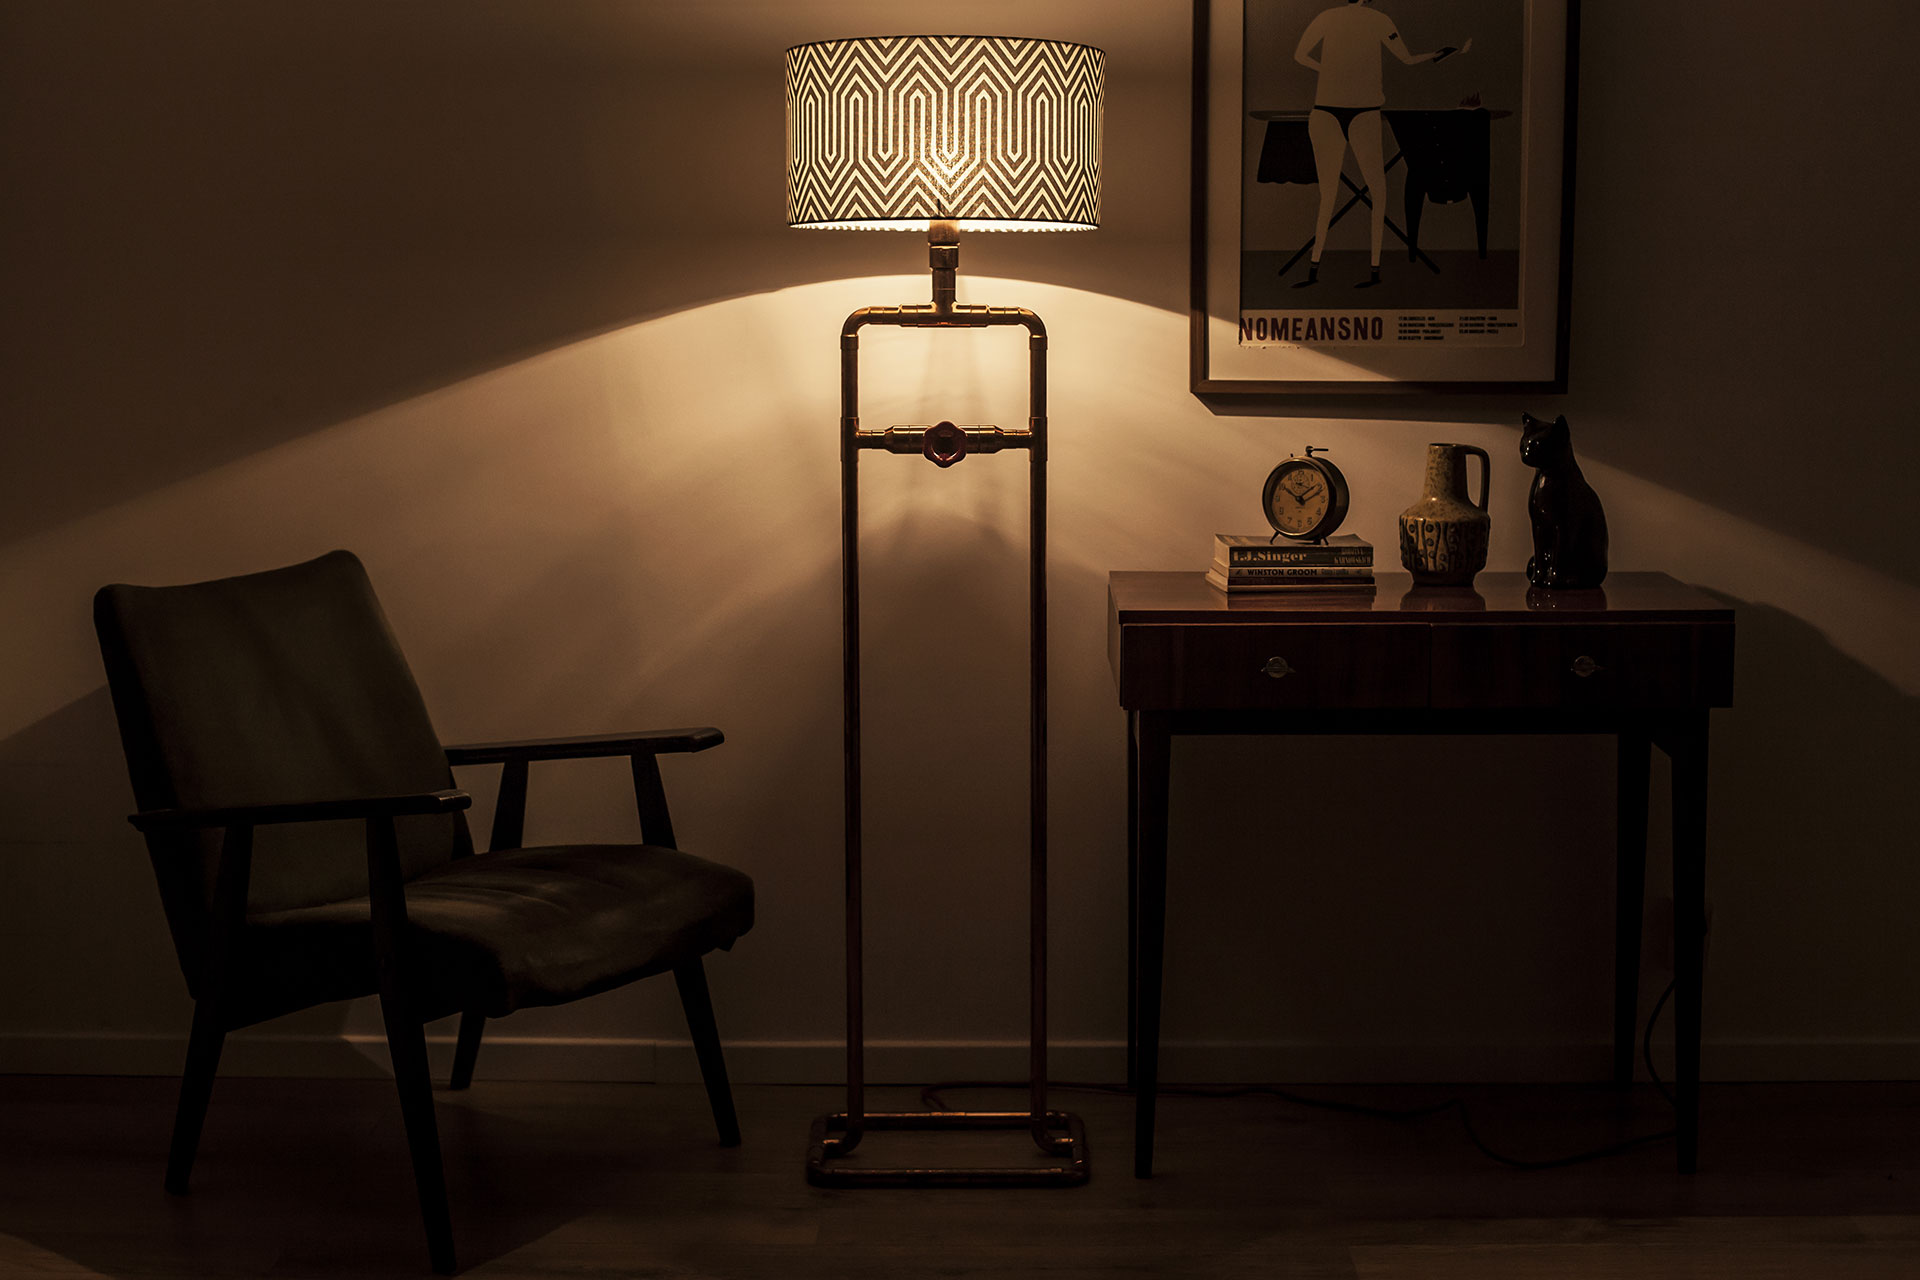 Decorative floor lamp with dimmer and custom geometric shade in vintage hip apartment